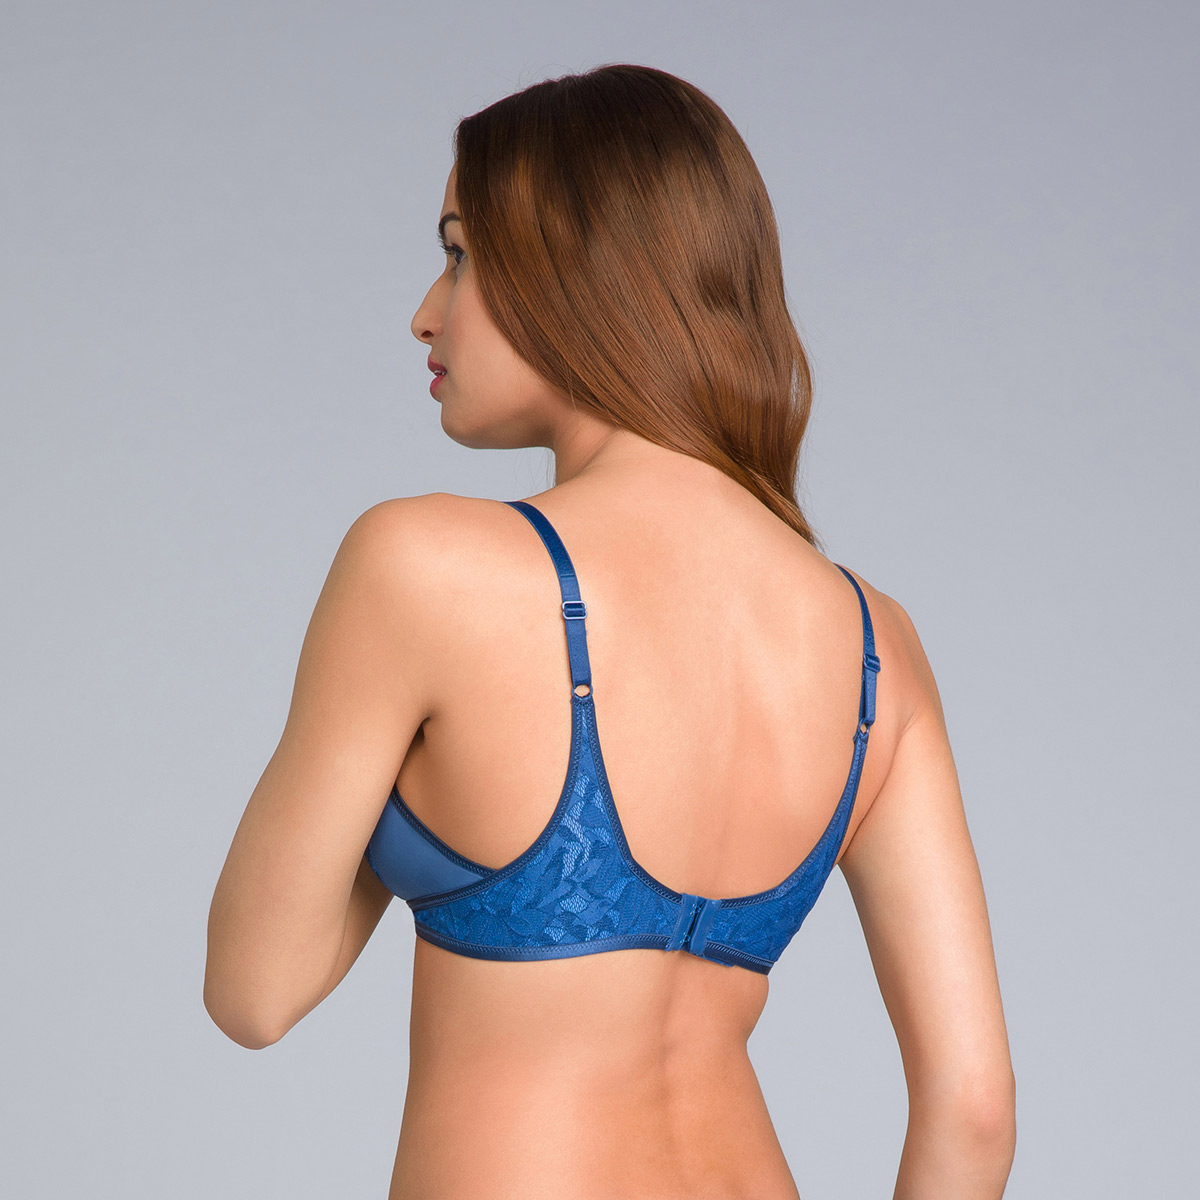 Reggiseno senza ferretto blu navy - Ideal Beauty Lace - PLAYTEX